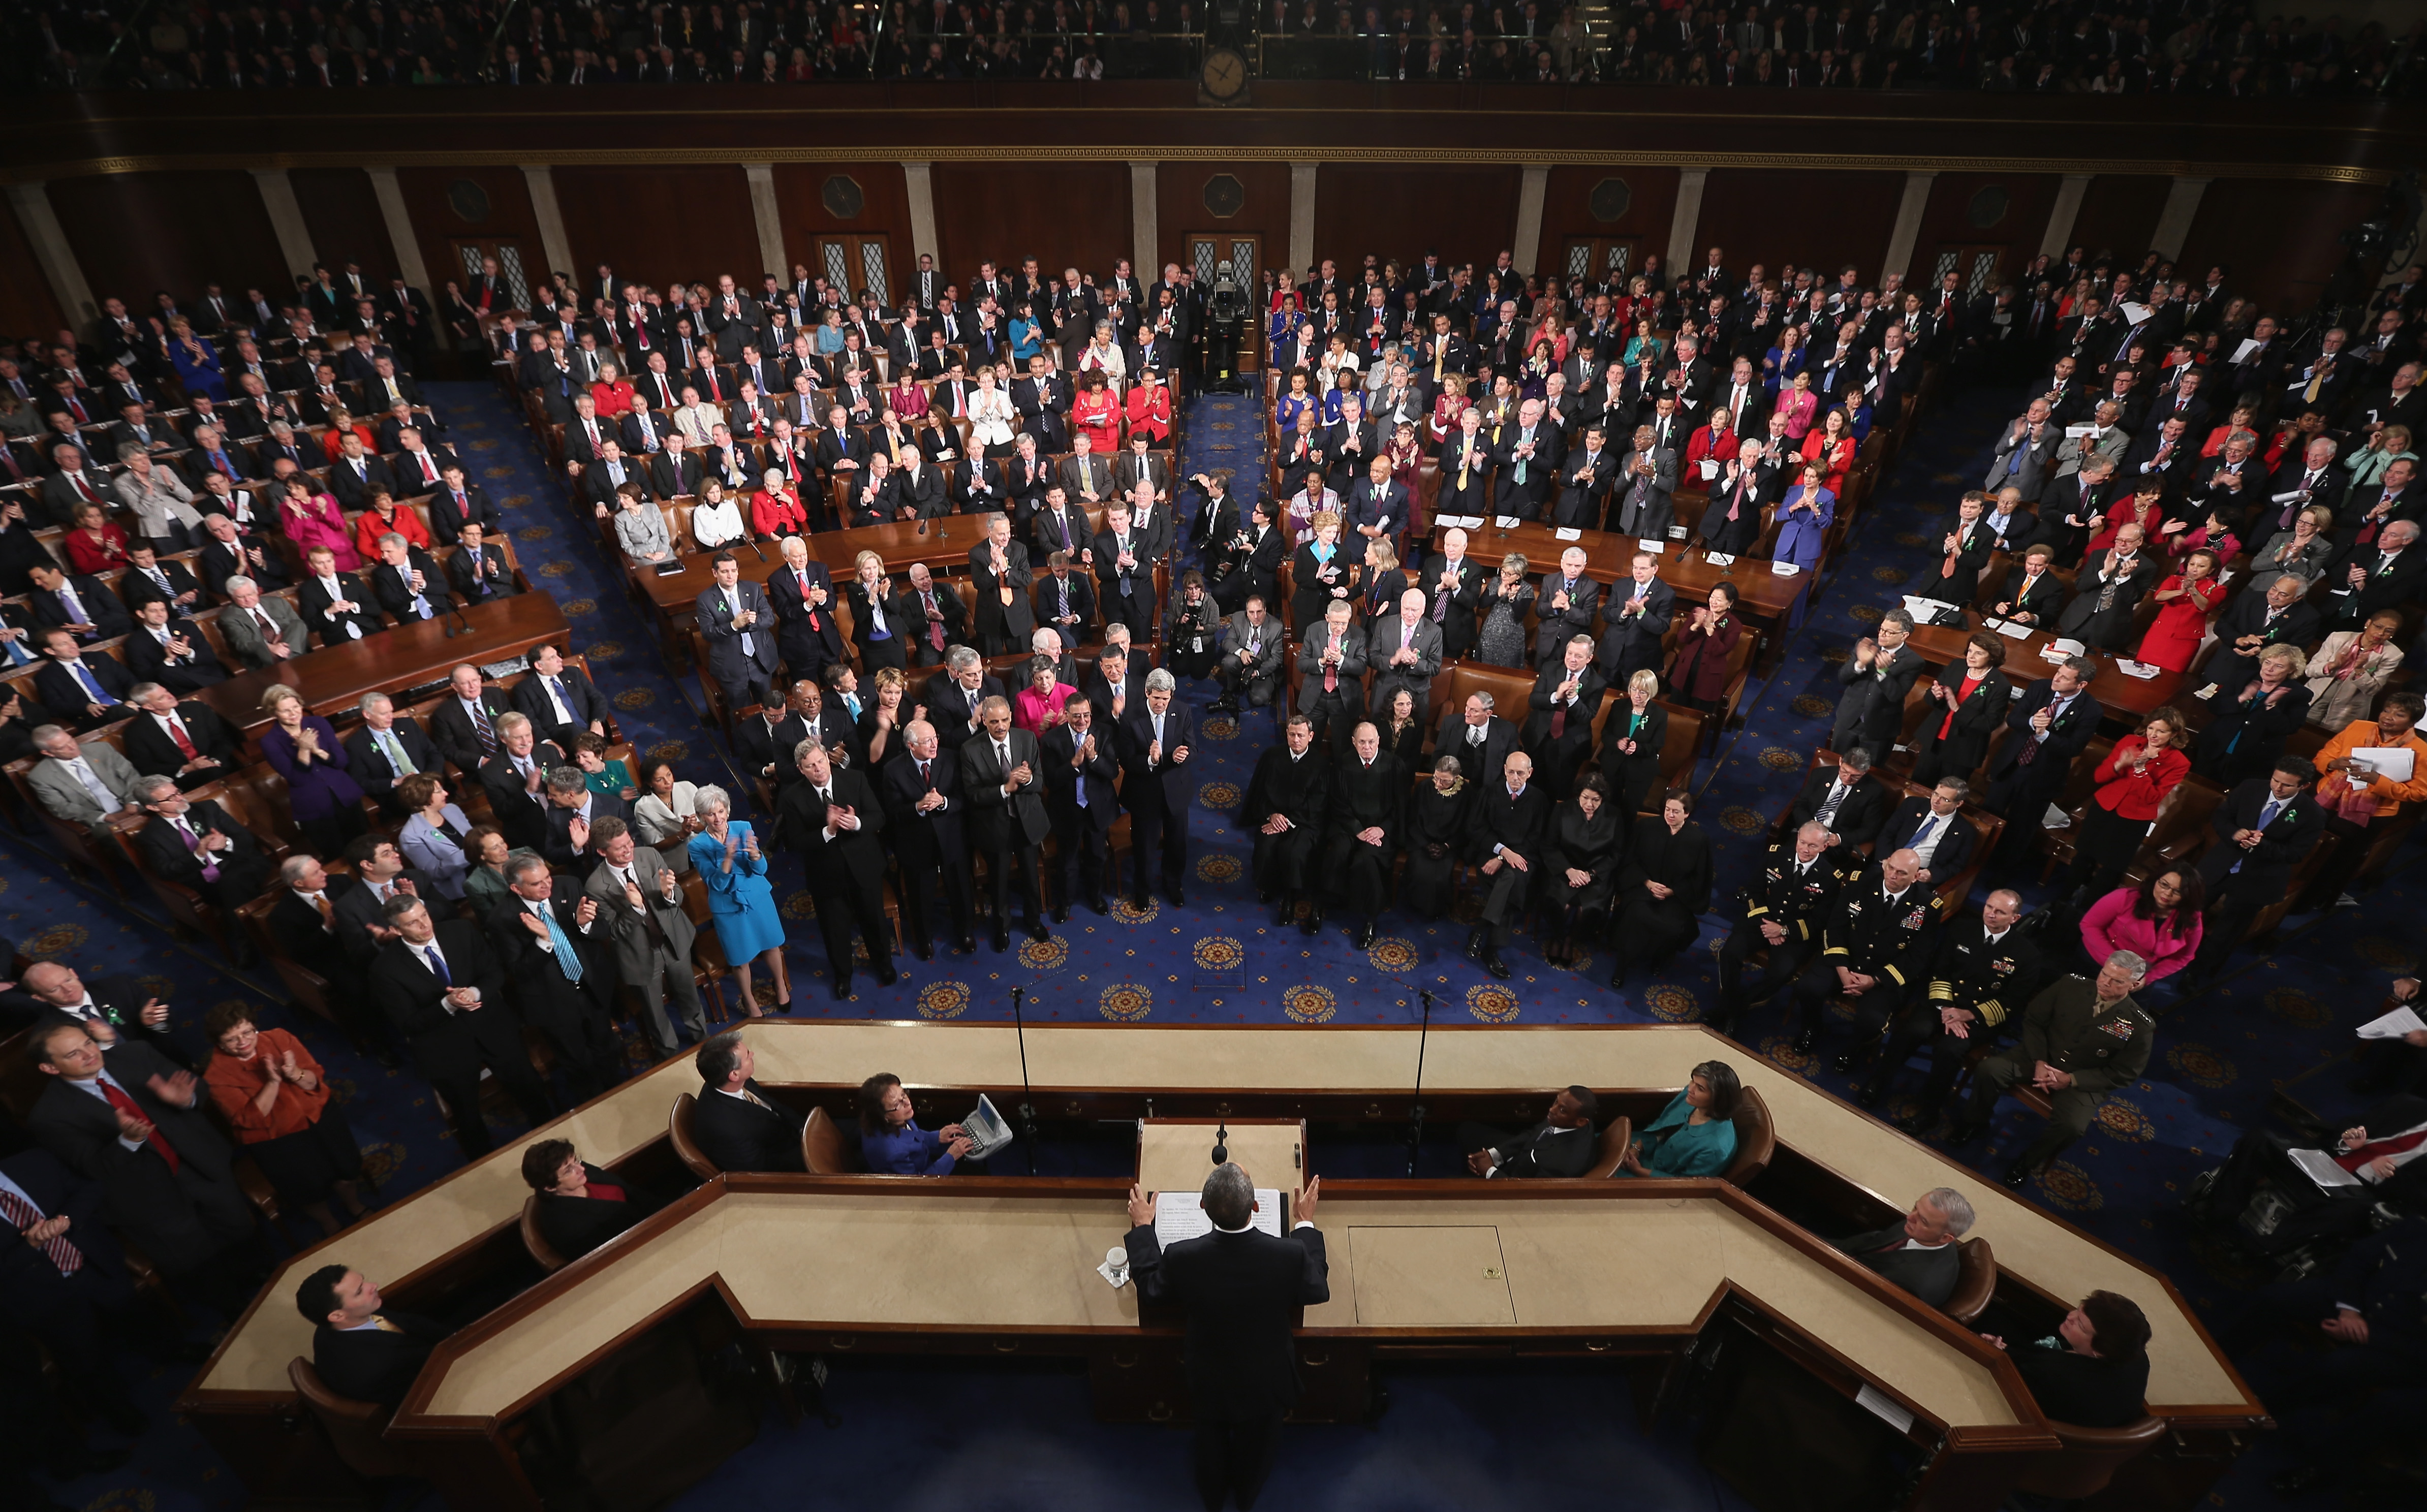 U.S. President Barack Obama delivers his State of the Union speech before a joint session of Congress at the U.S. Capitol February 12, 2013 in Washington, DC.